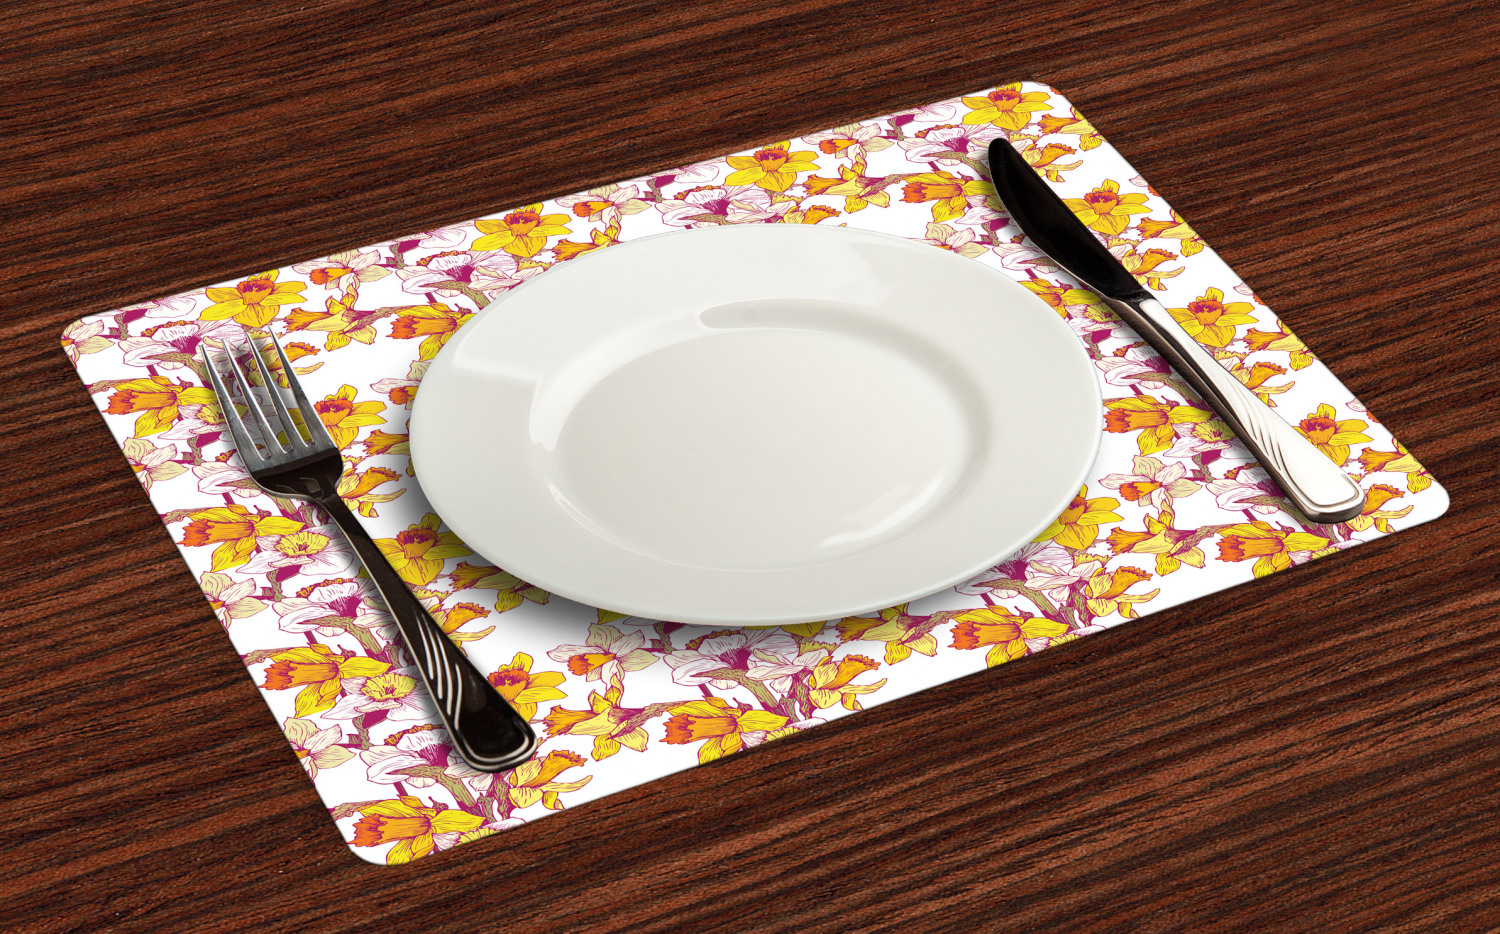 Ambesonne-Flower-Pattern-Placemat-Set-of-4-Fabric-Place-Mats-for-Table-Decor thumbnail 113